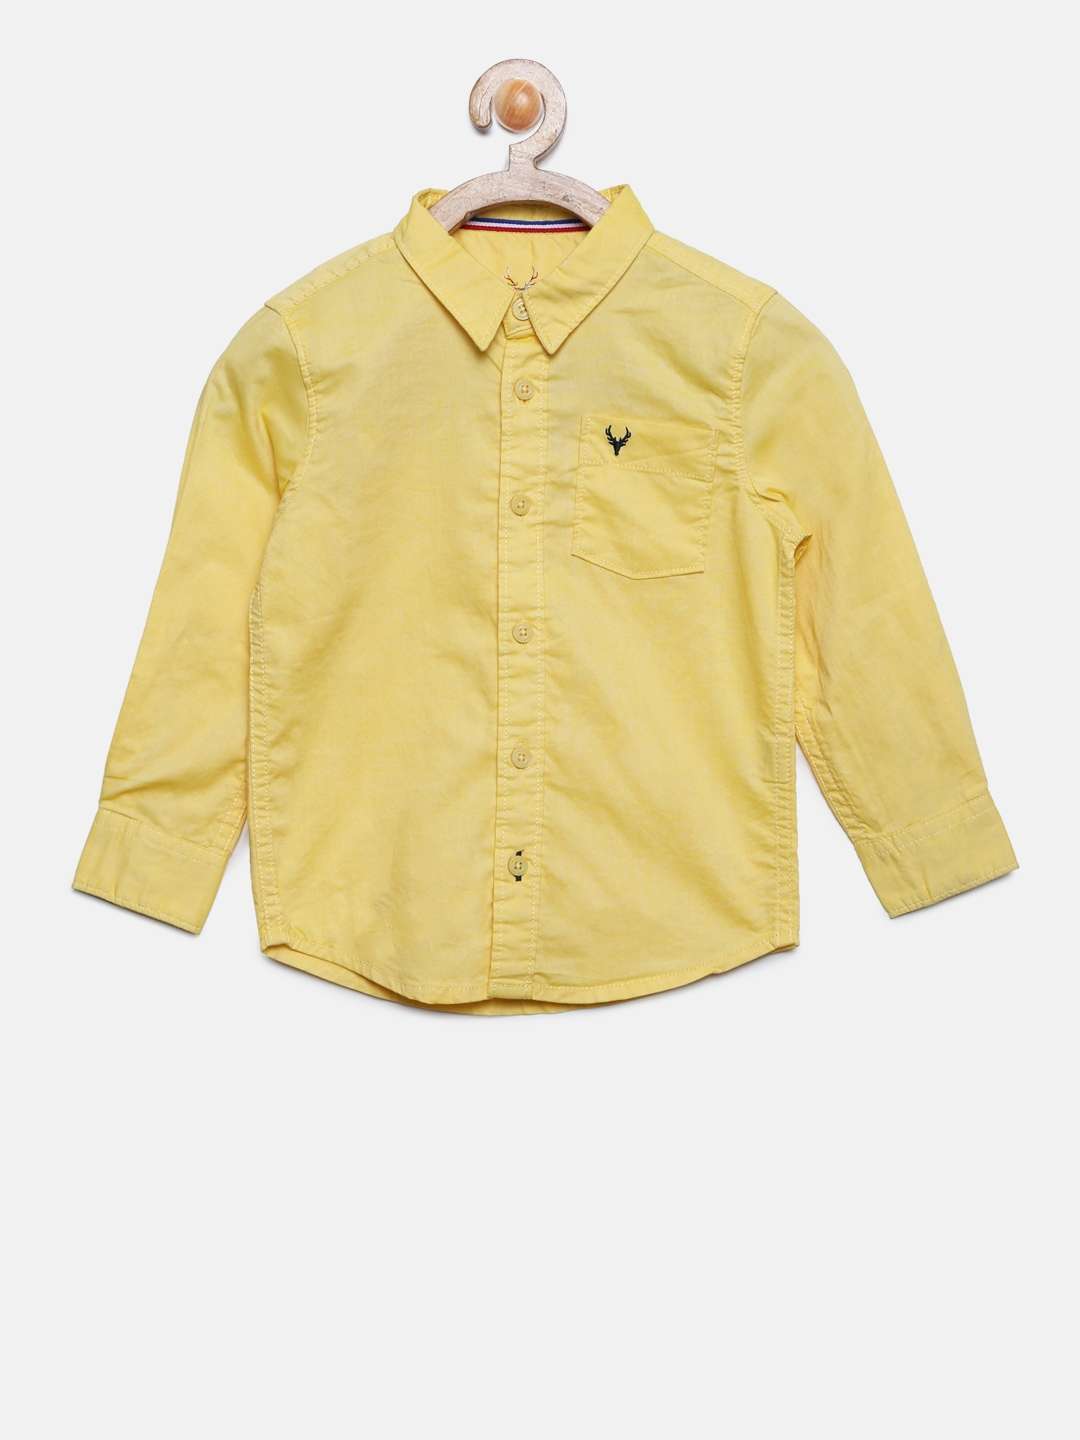 061d1359f Buy Allen Solly Junior Boys Yellow Regular Fit Solid Casual Shirt ...